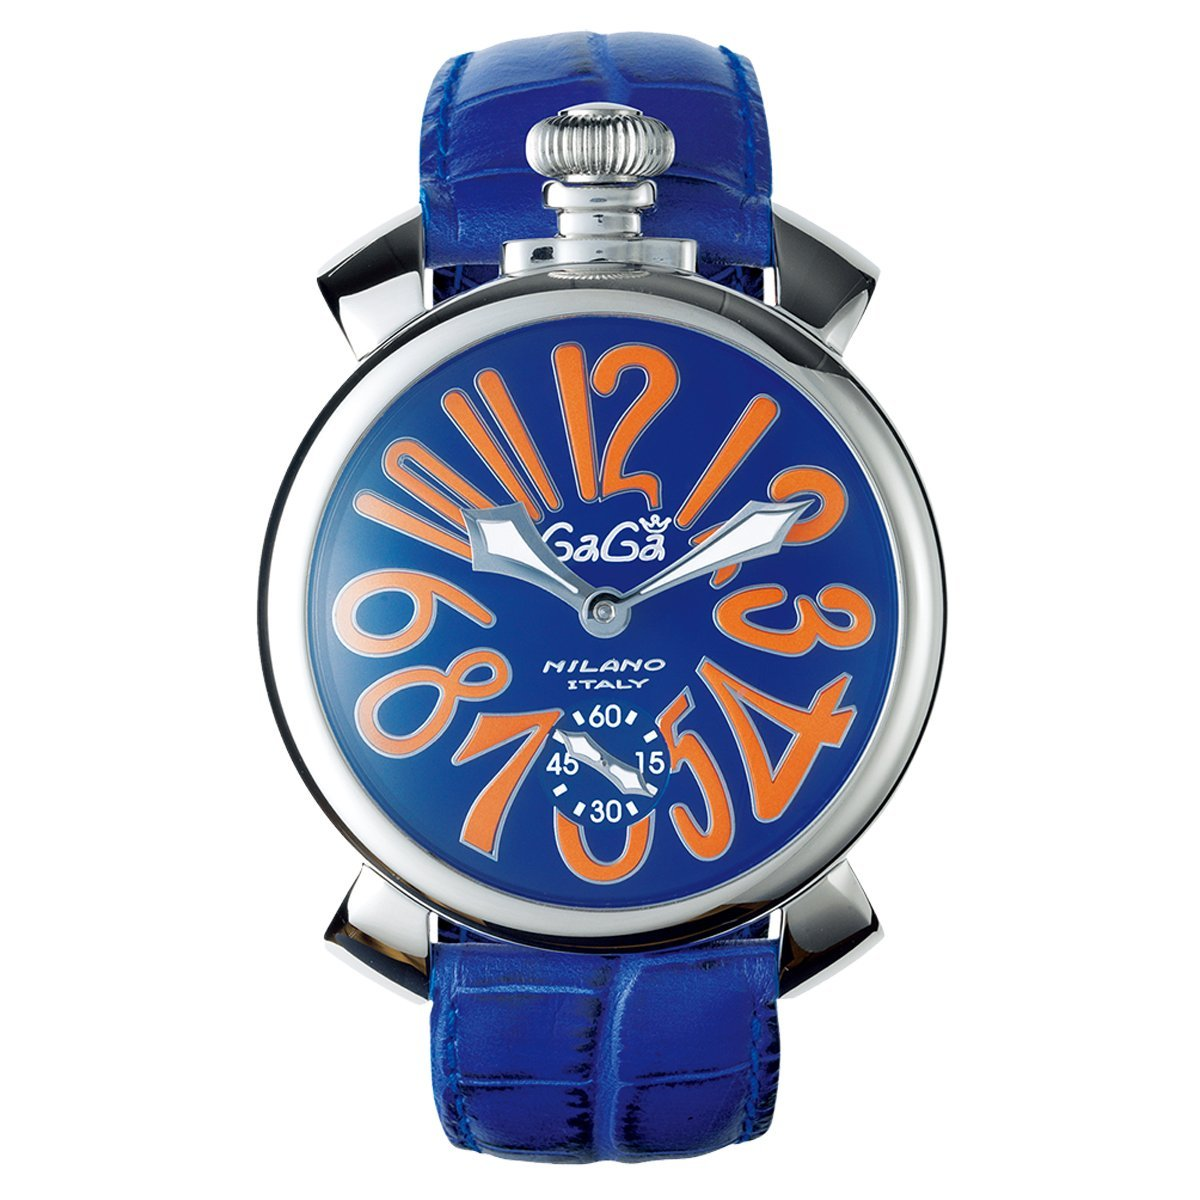 GaGà Milano Manuale 48MM Blue - Watches & Crystals